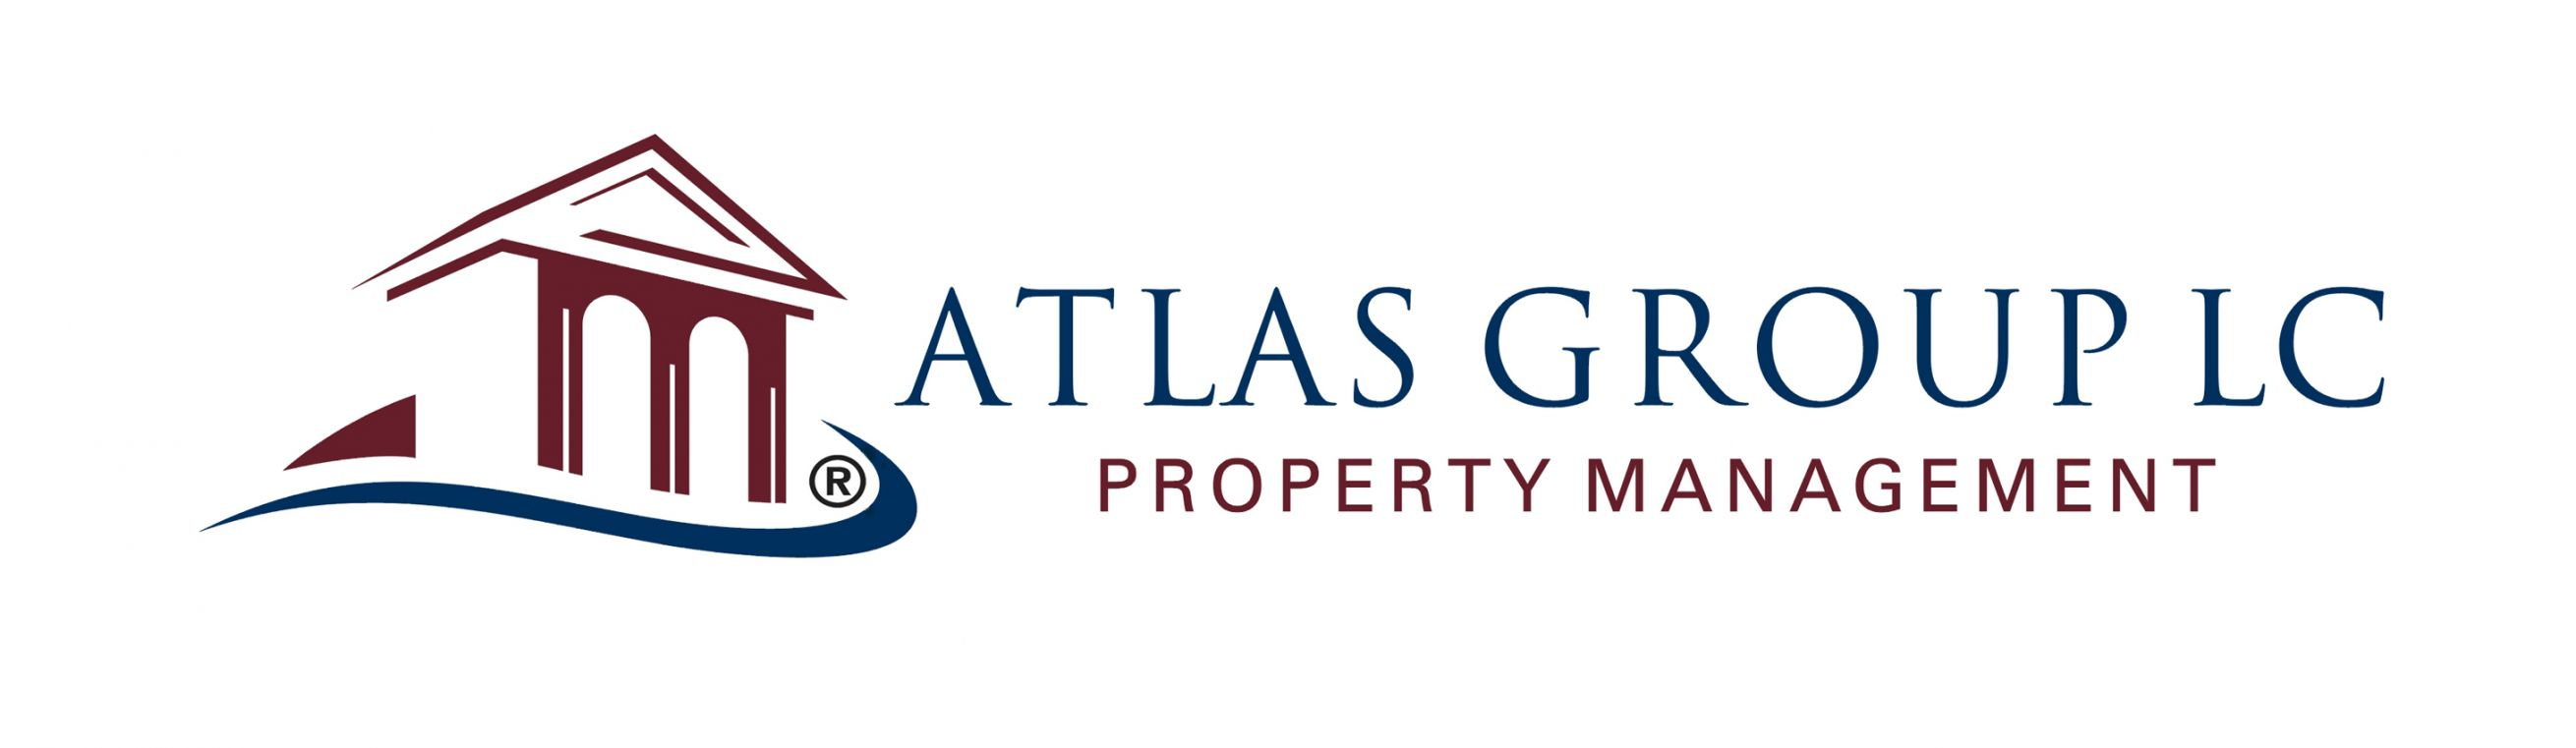 Atlas Group LC - Las Vegas Property Management Logo